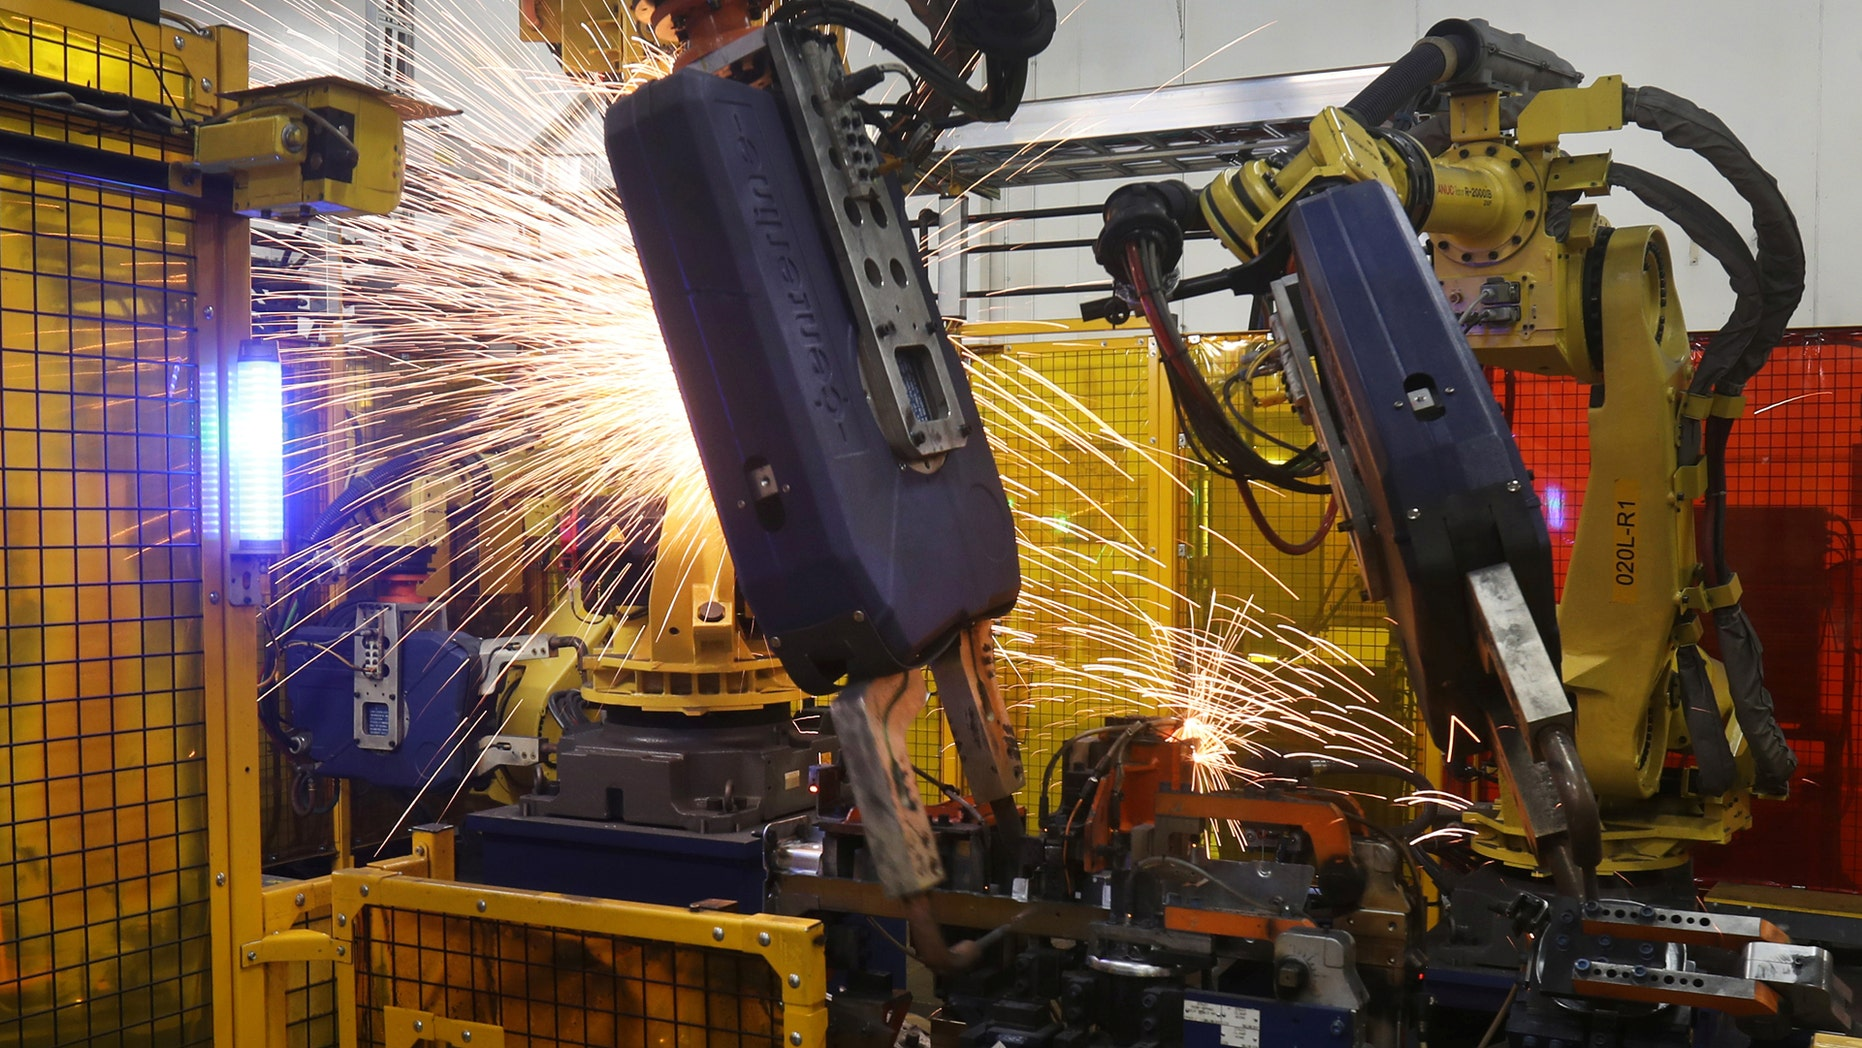 File photo: Robot welders on the floor of Alfield Industries, a subsidiary of Martinrea, one of three global auto parts makers in Canada, in Vaughan, Ontario, Canada April 28, 2017. Picture taken April 28, 2017. (REUTERS/Fred Thornhill)